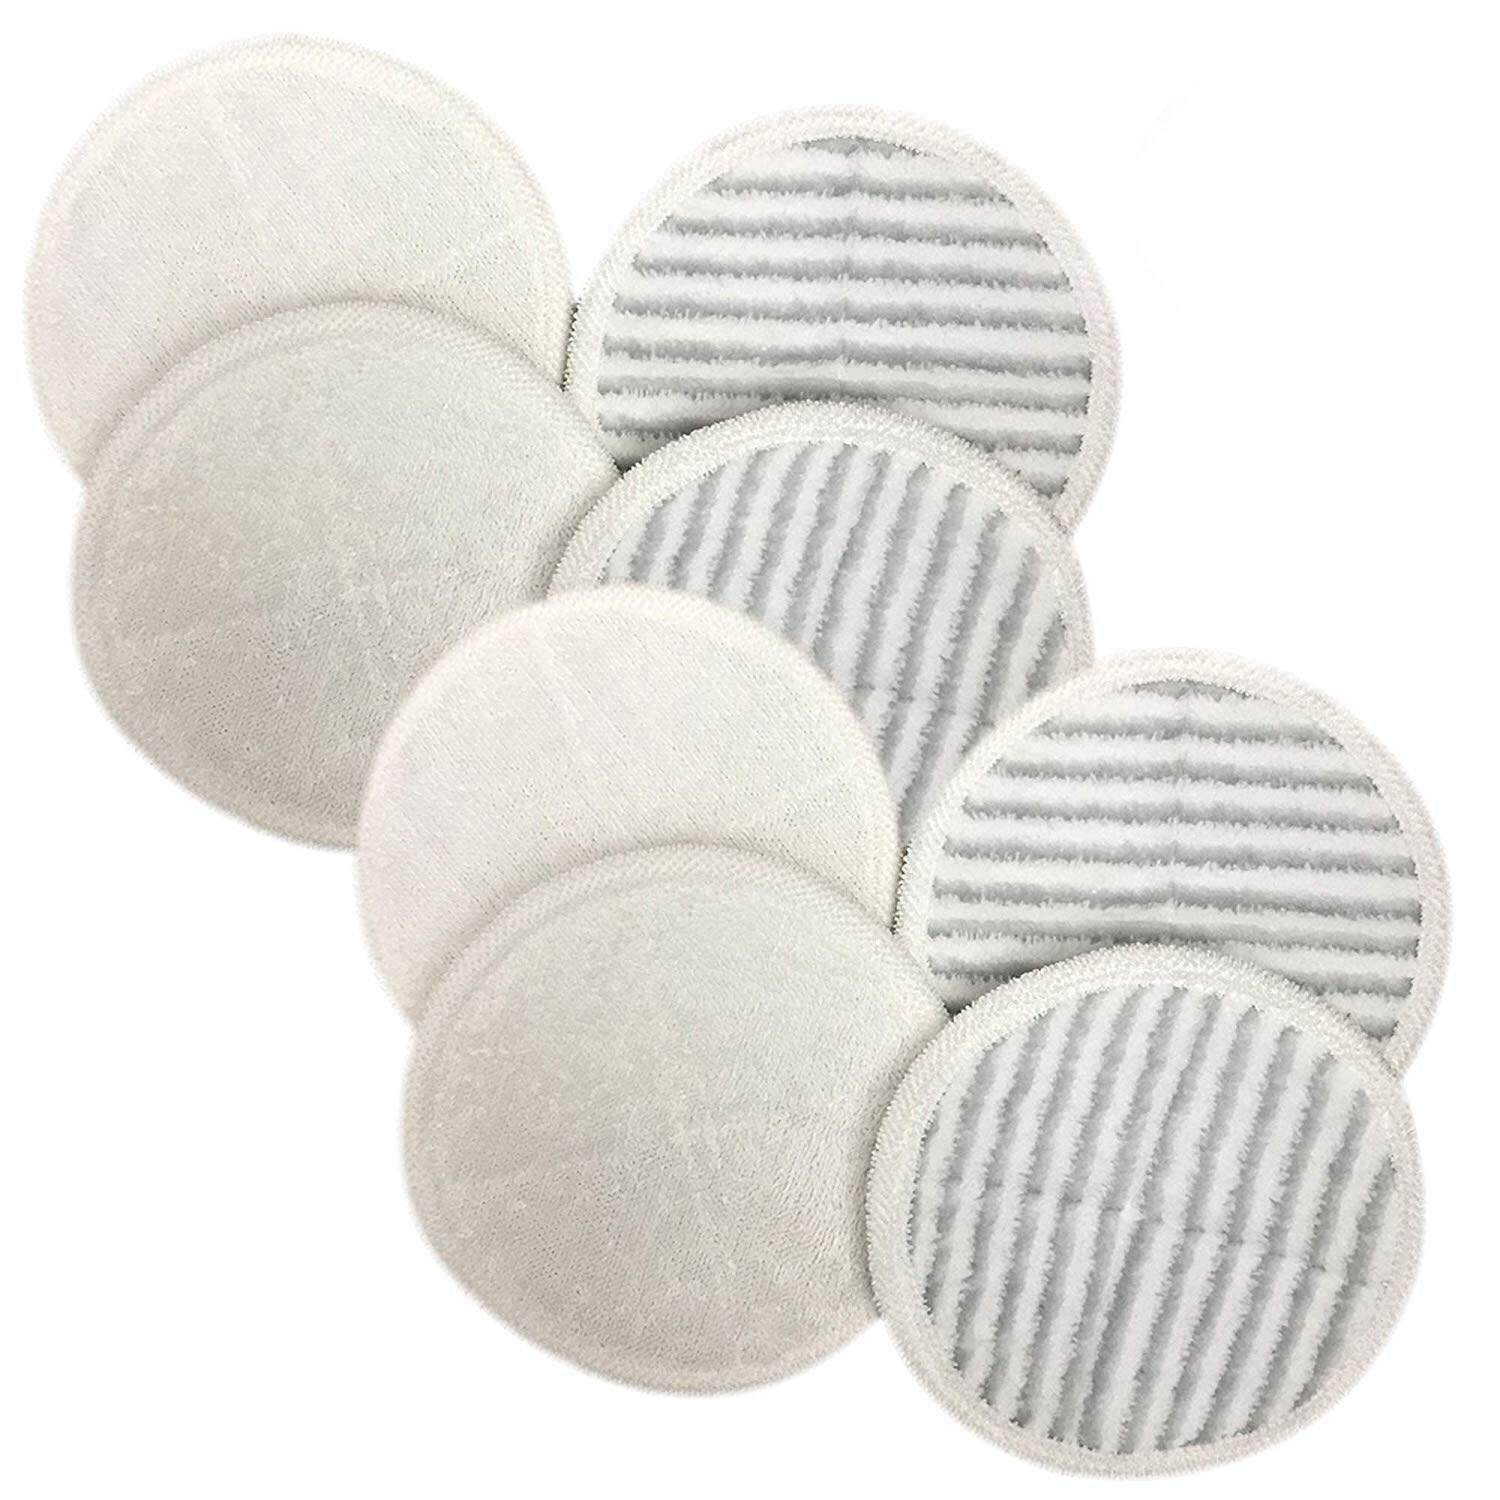 Replacement Mop Pads Compatible With Bissell Spinwave Mop Pad Heads Parts-Perfect For Models 13122,13129,13151,13139-Home And Office Use-Bulk(8 Pack)